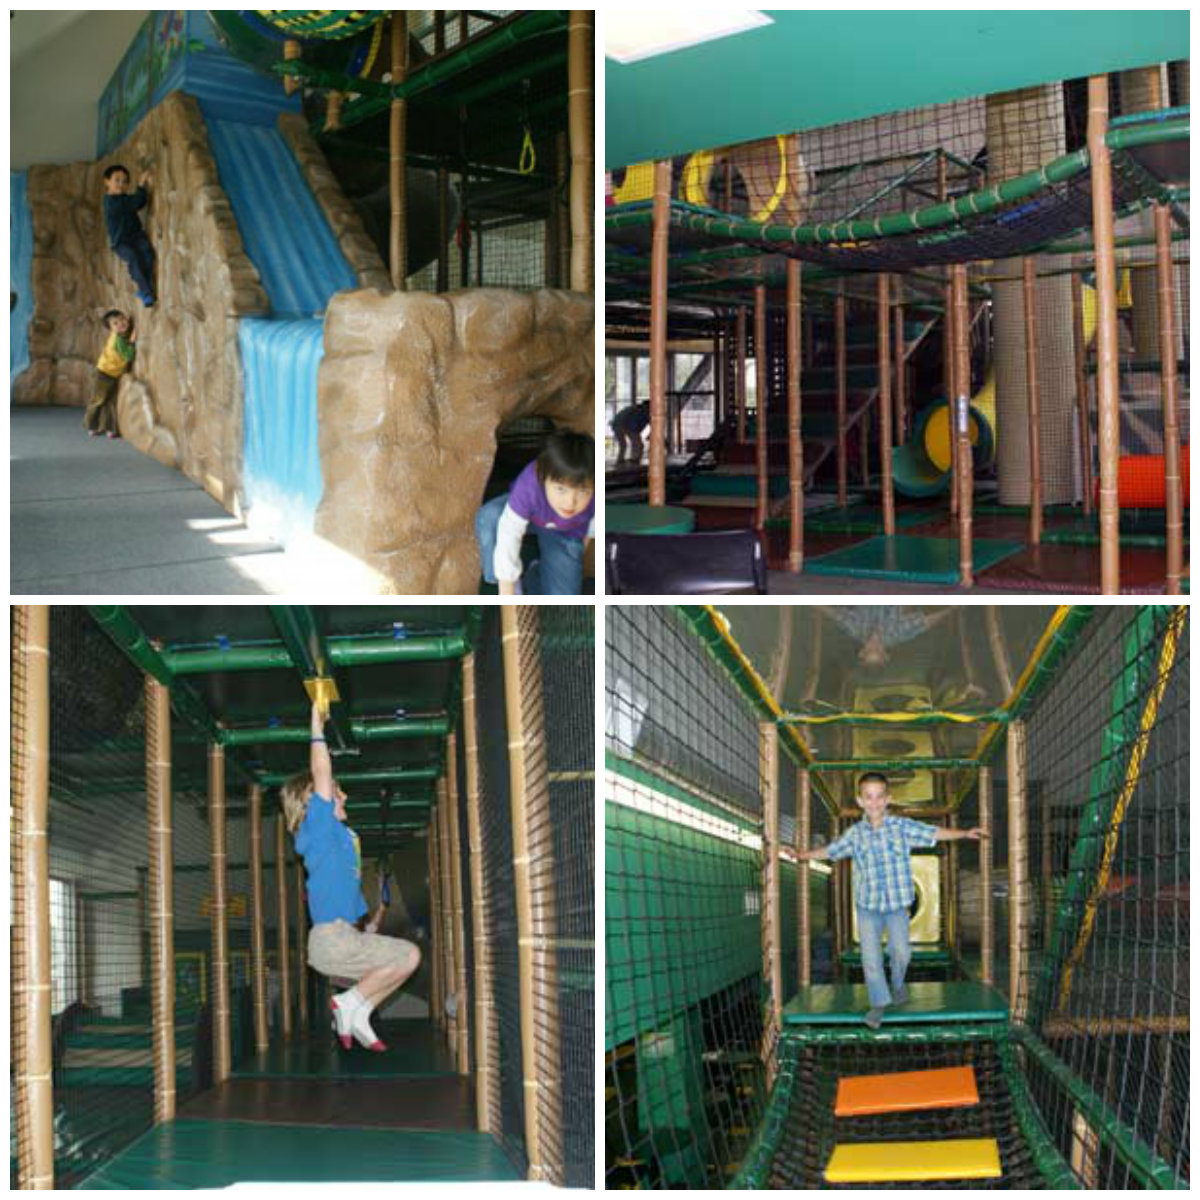 indoor-playground-go-bananas-vancouver